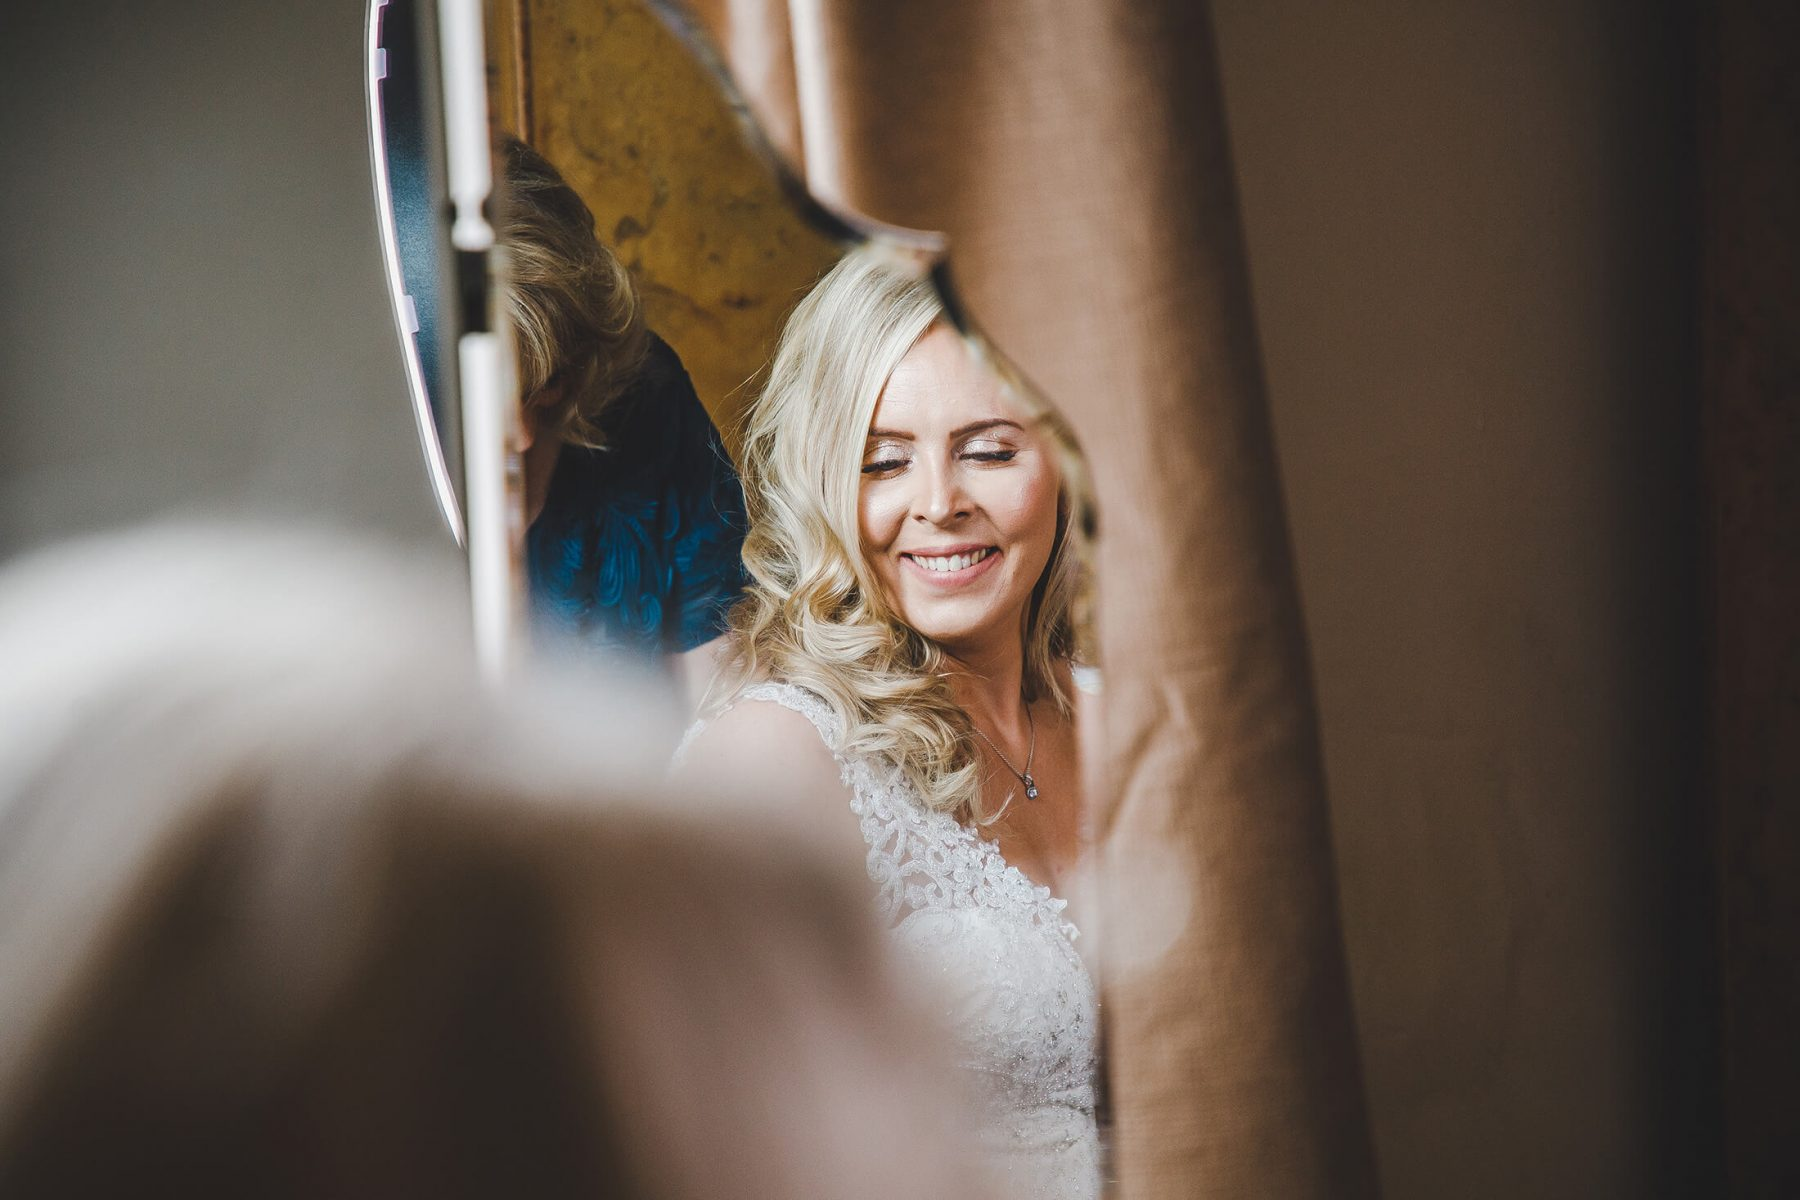 The bride reflected in a mirror during bridal prep